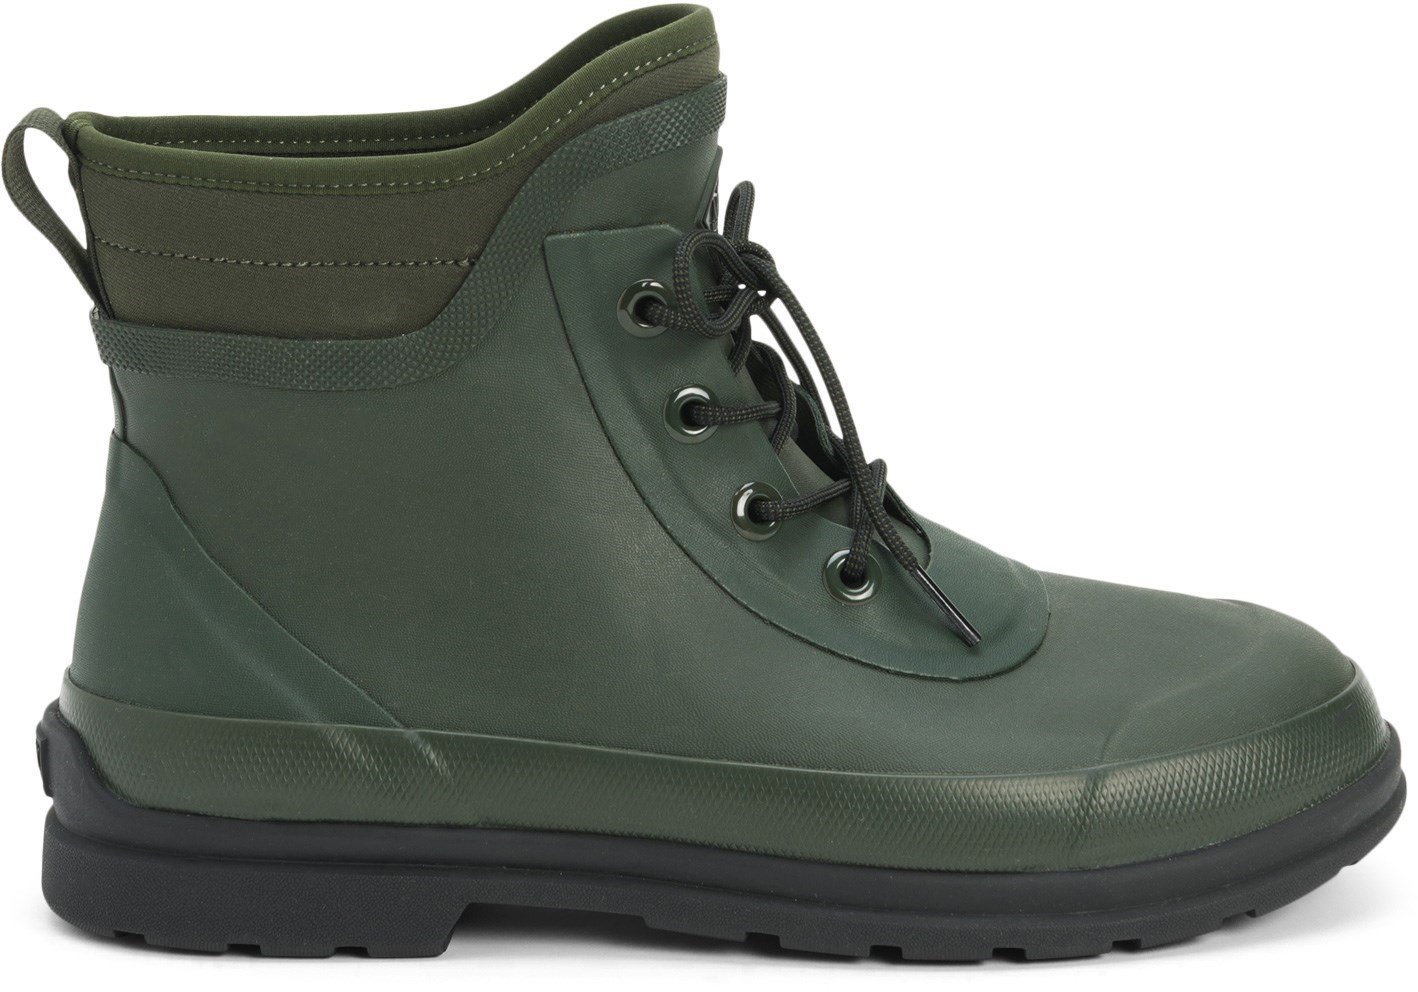 Muck Boots Unisex Muck Originals Lace-Up Boots Various Colours 31783 - Green 6